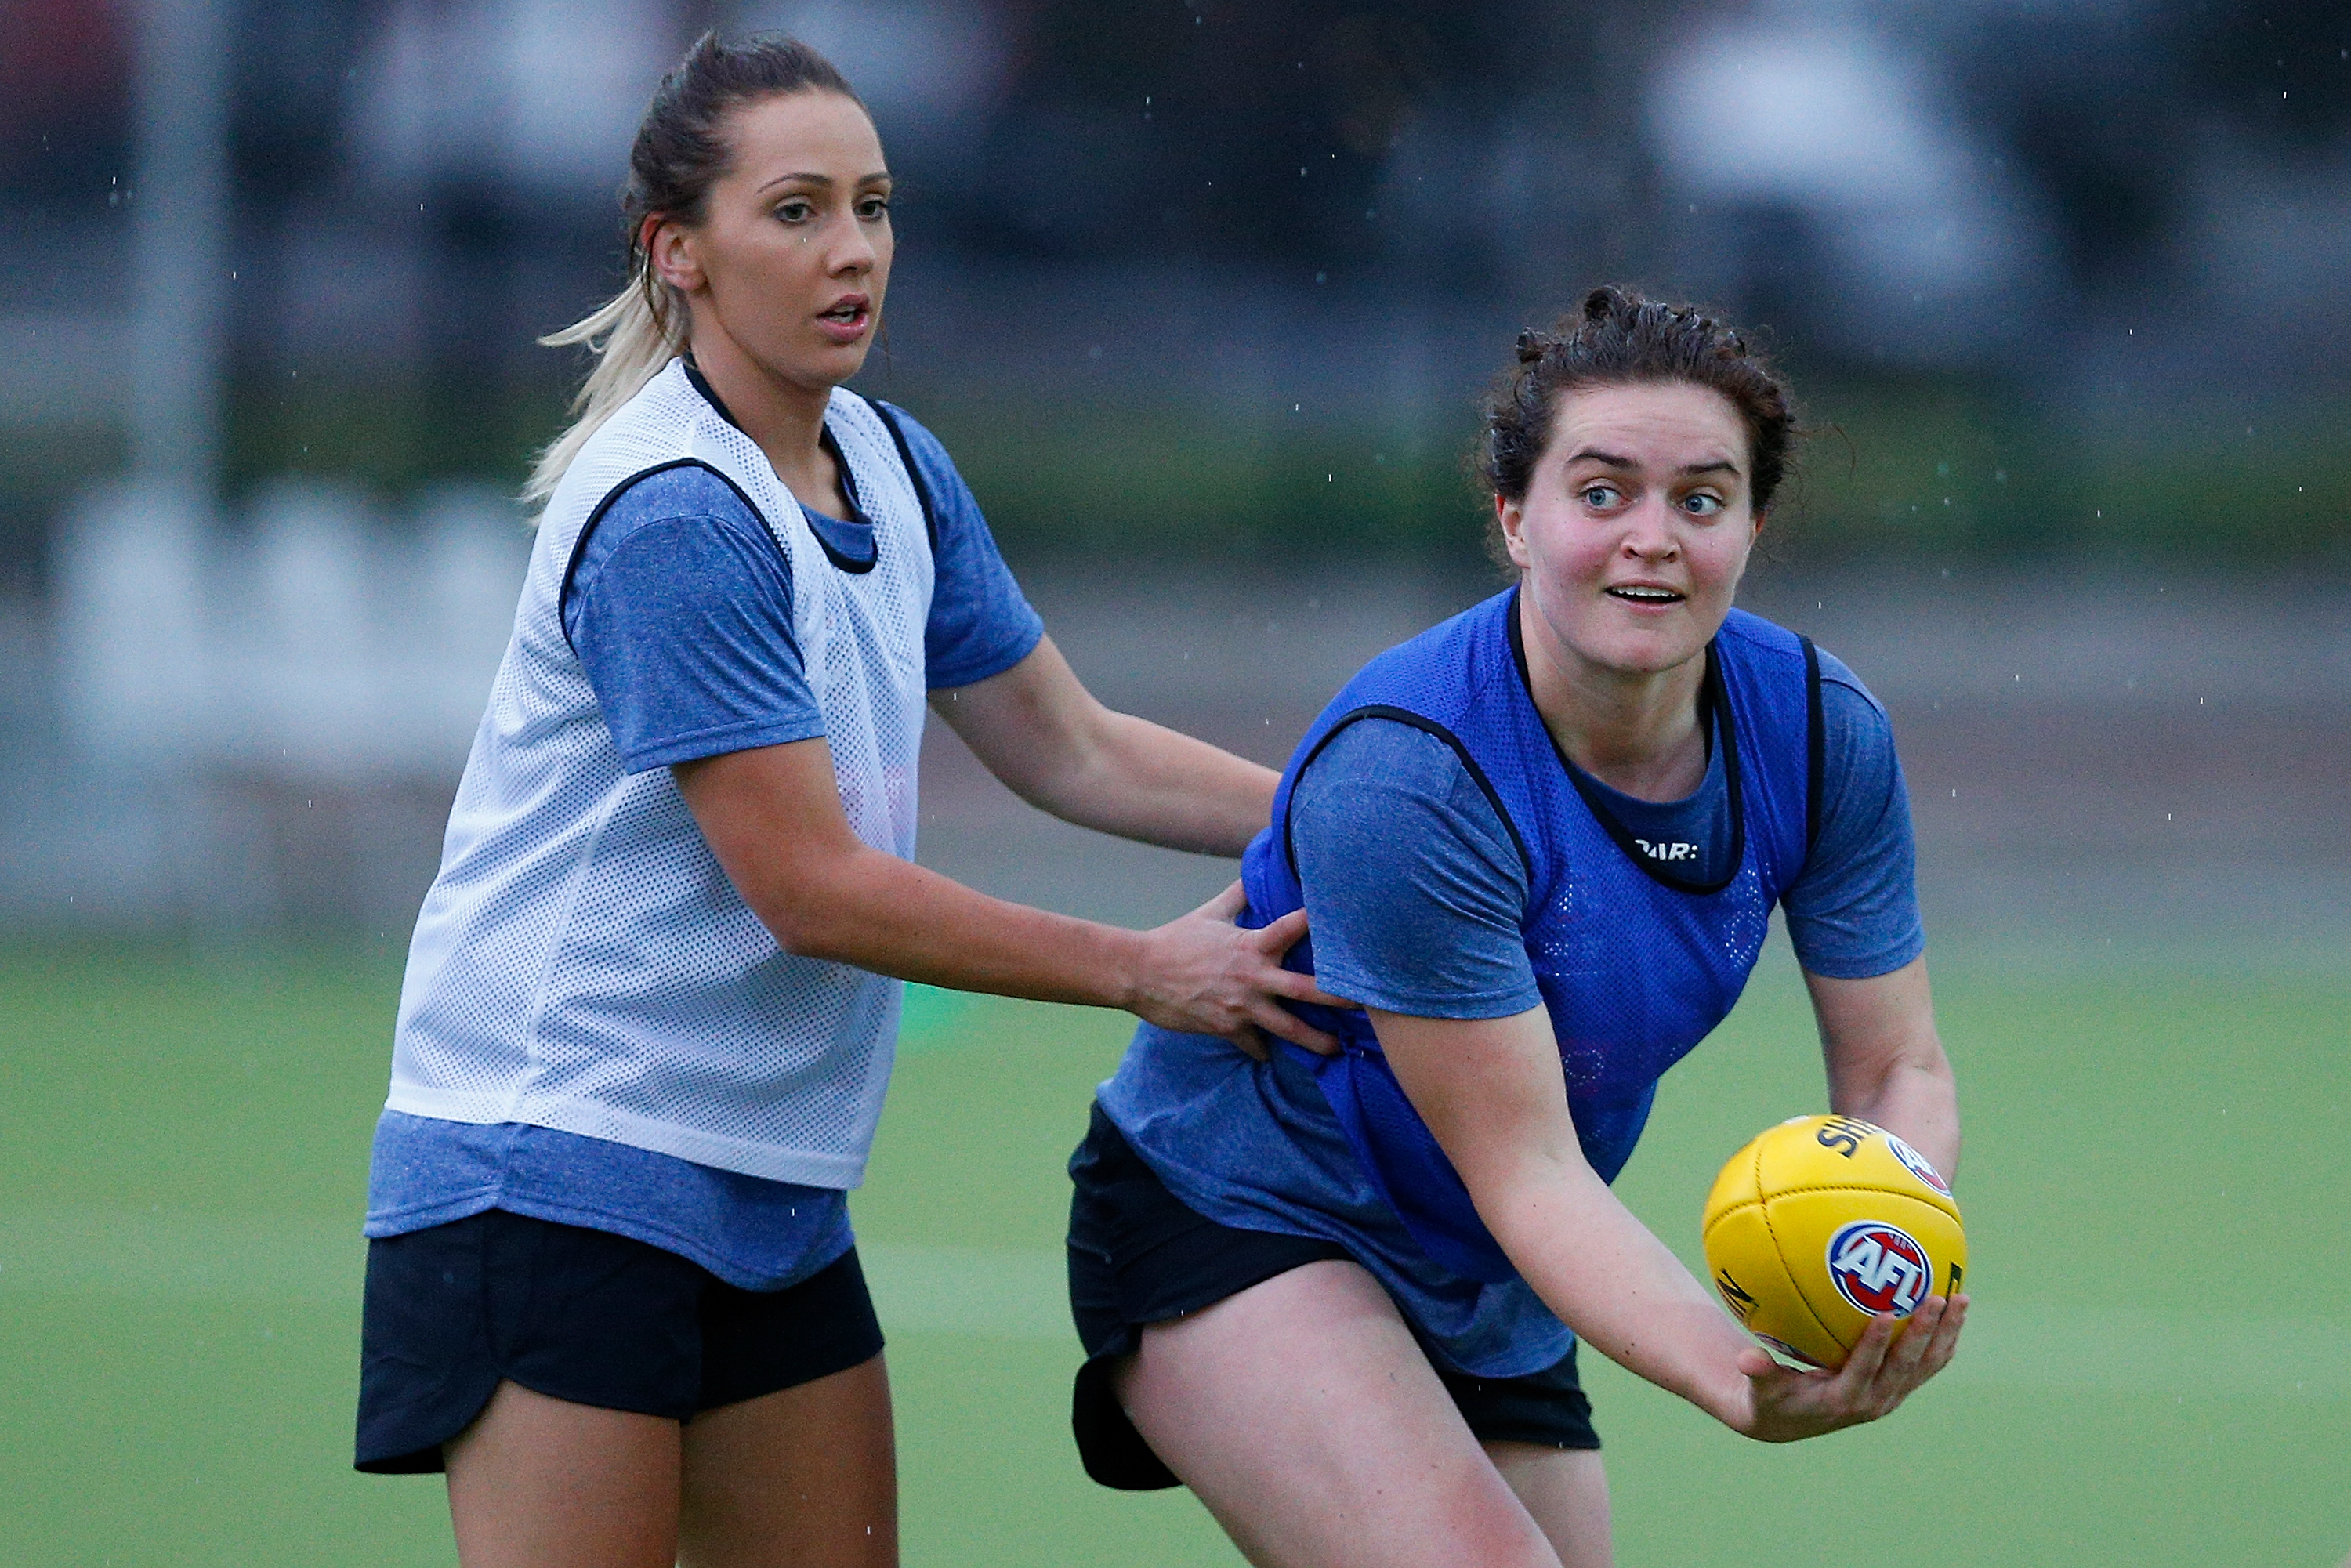 MELBOURNE, AUSTRALIA - NOVEMBER 22: Laura Bailey (L) and Meg McDonald (R) in action during the Western Bulldogs women's AFL training session at Maribyrnong College on November 22, 2016 in Melbourne, Australia. (Photo by Daniel Pockett/AFL Media/Getty Images)